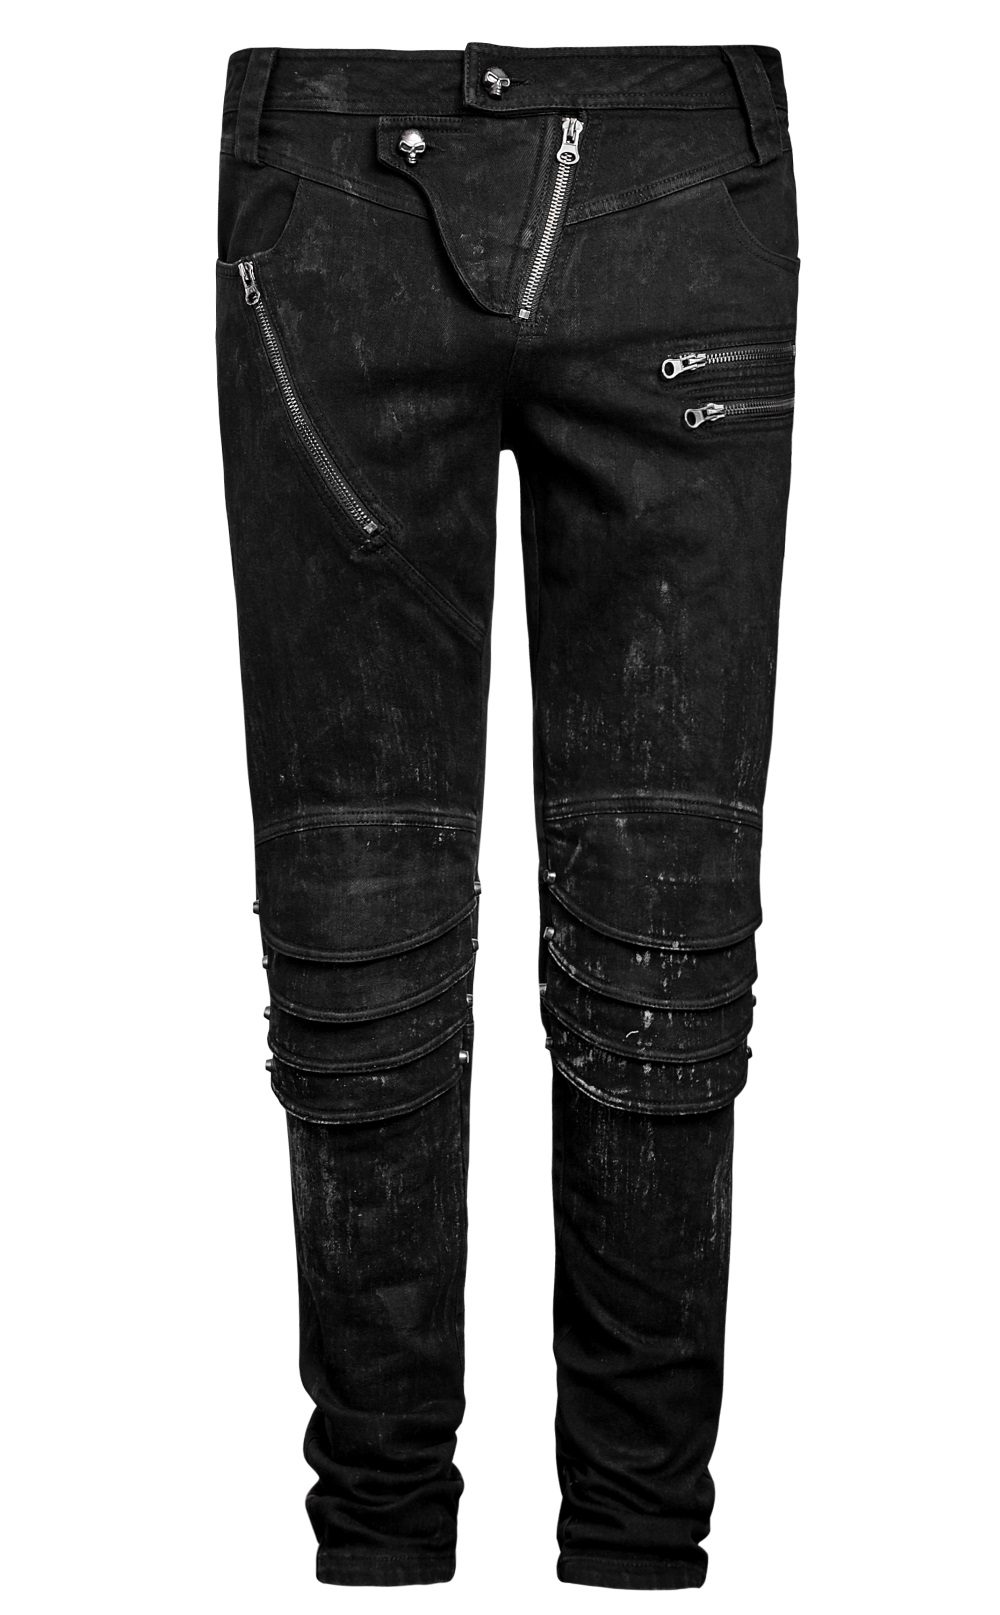 pantalon noir effet d lav punk rave de style gothique rock pour homme. Black Bedroom Furniture Sets. Home Design Ideas